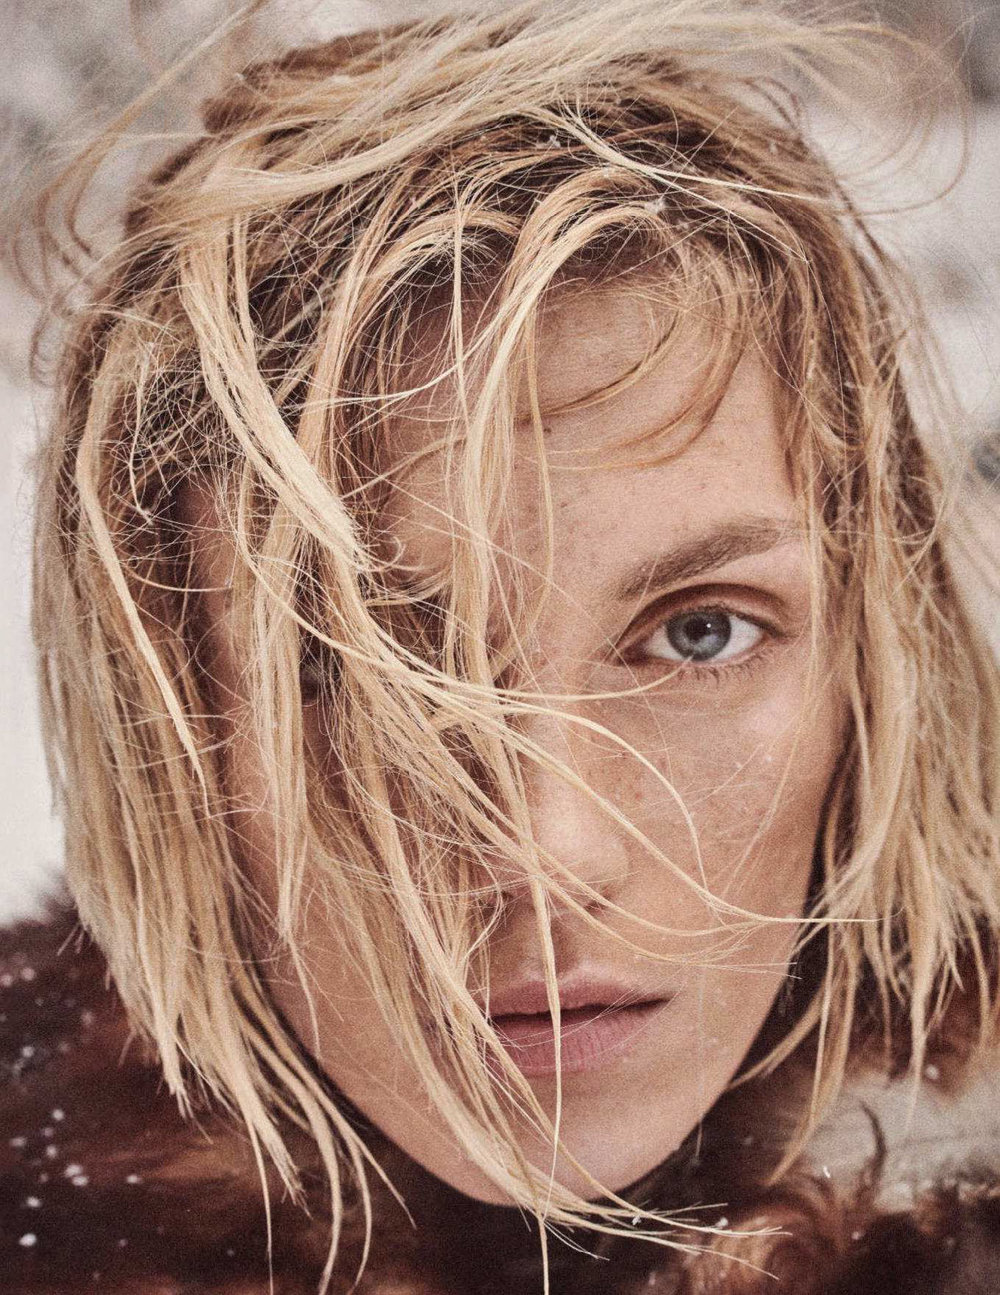 Anja Rubik by Giampaolo Sgura for Vogue Germany Dec 2018 (7).jpg